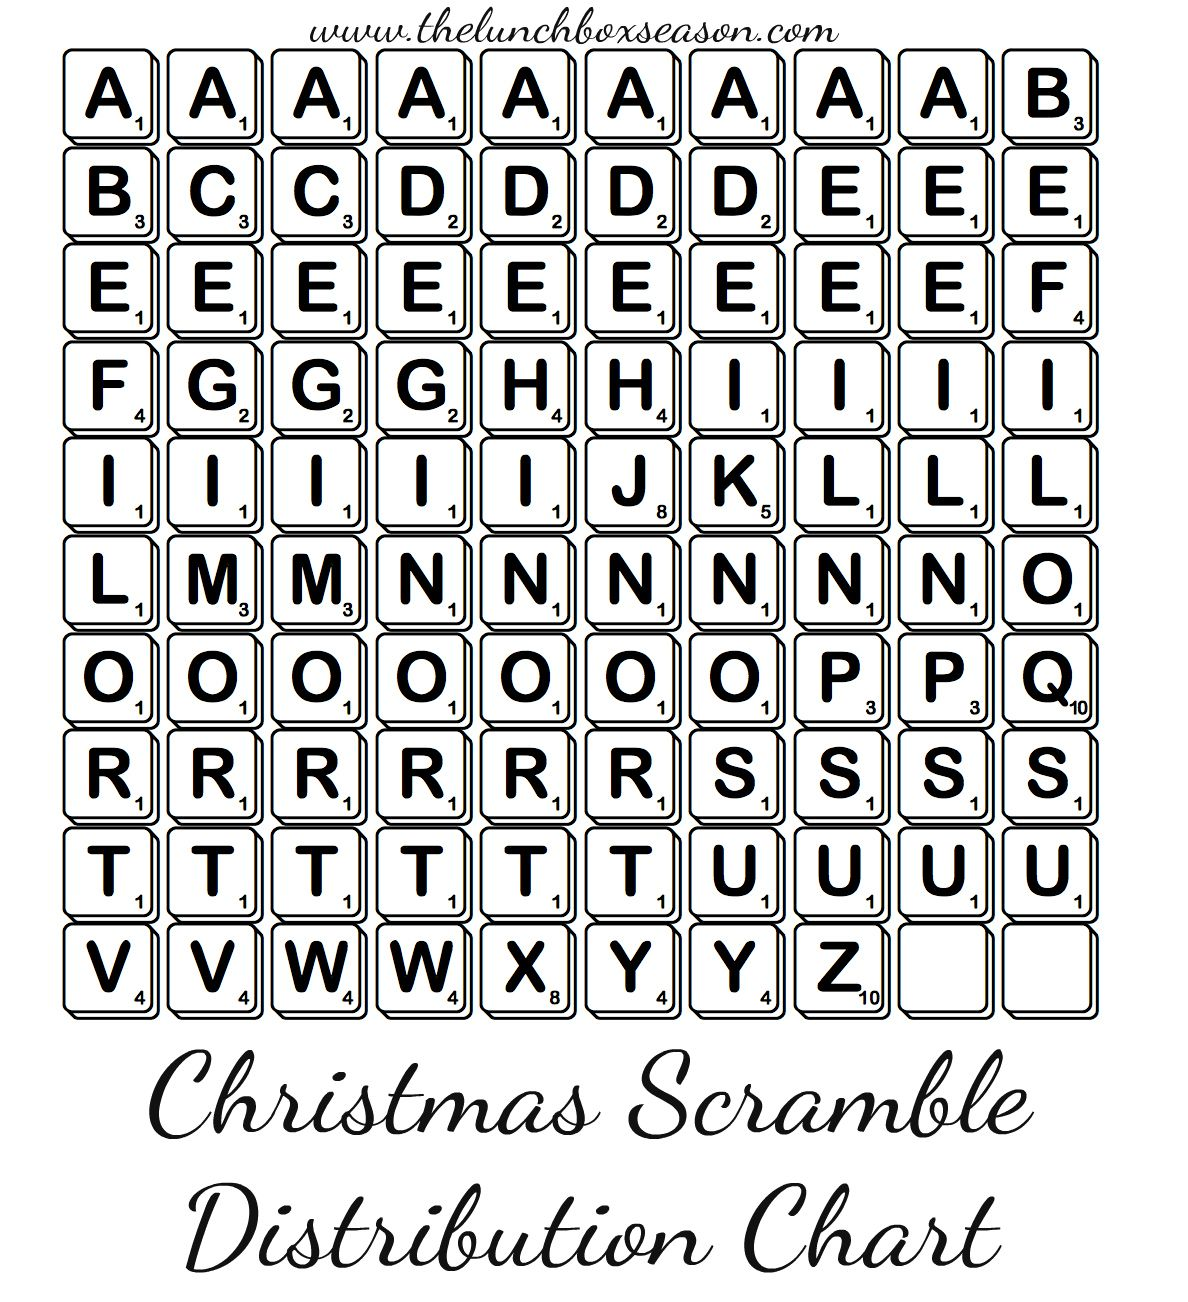 Official Distribution Chart For Scramble Scrabble Letters Part Of Our Holiday Christmas